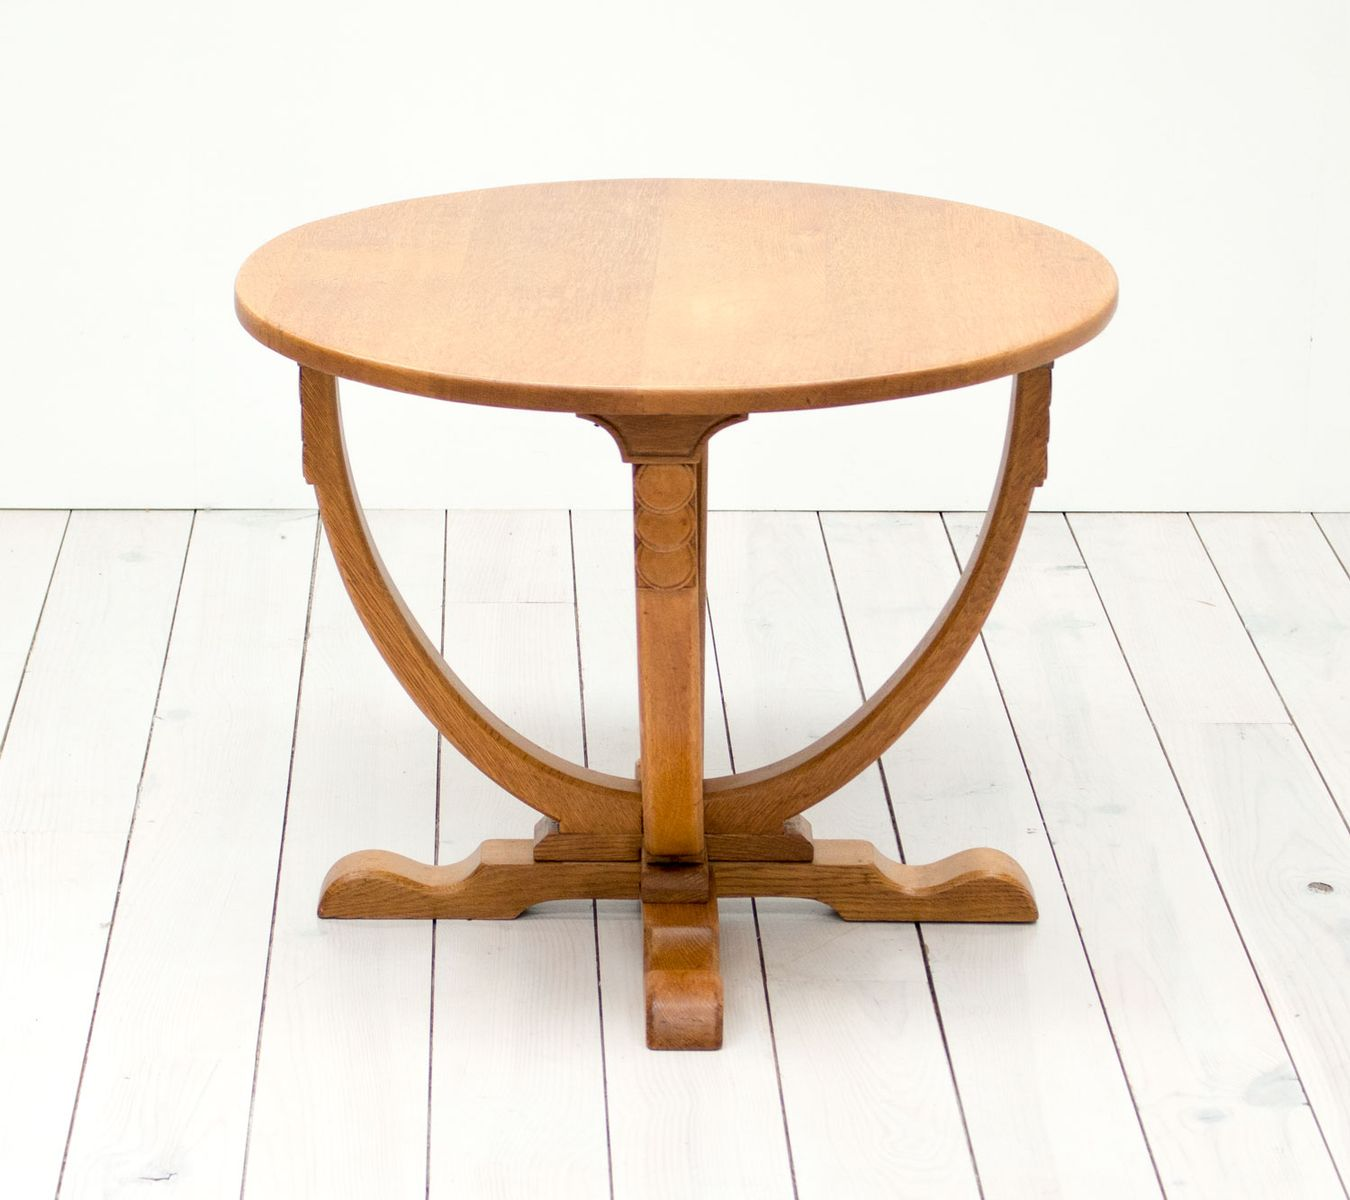 Vintage english art deco oak side table for sale at pamono - Deco table vintage ...